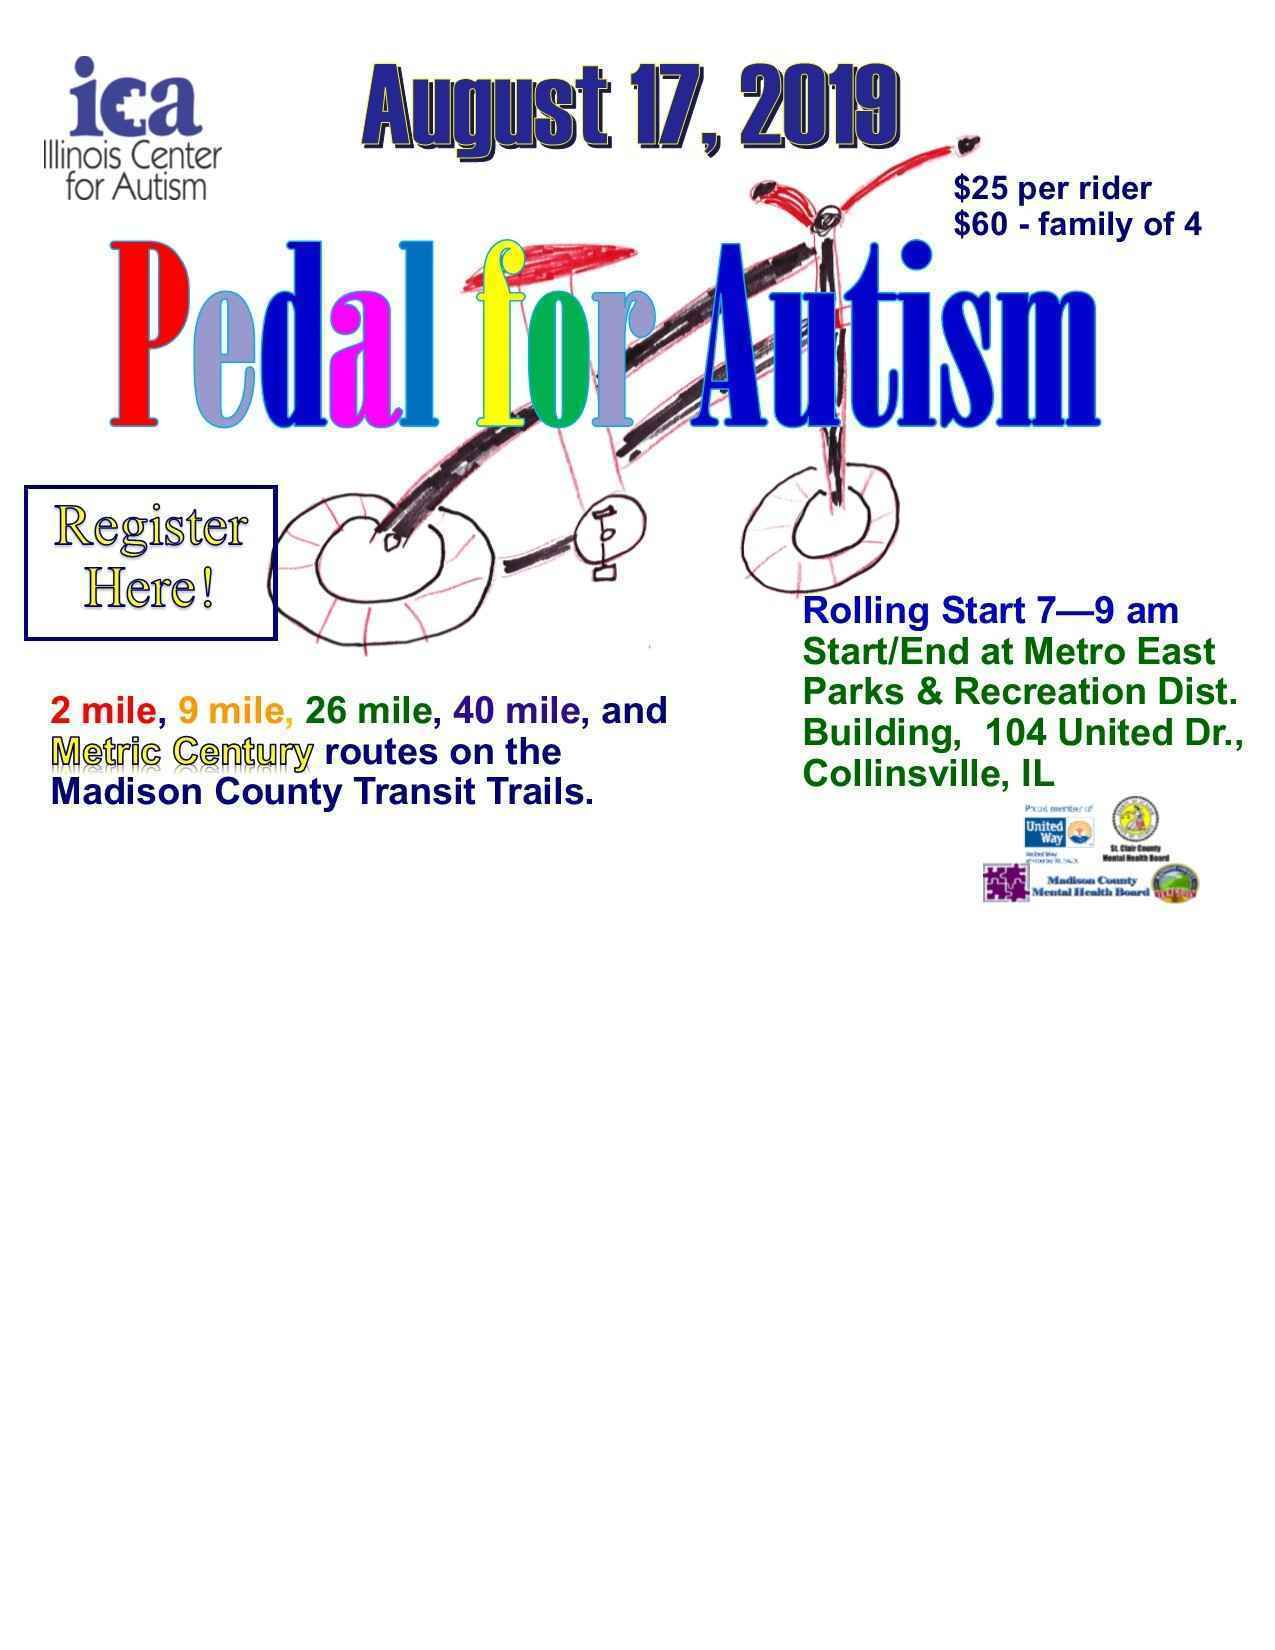 Illinois Center for Autism's Pedal for Autism image